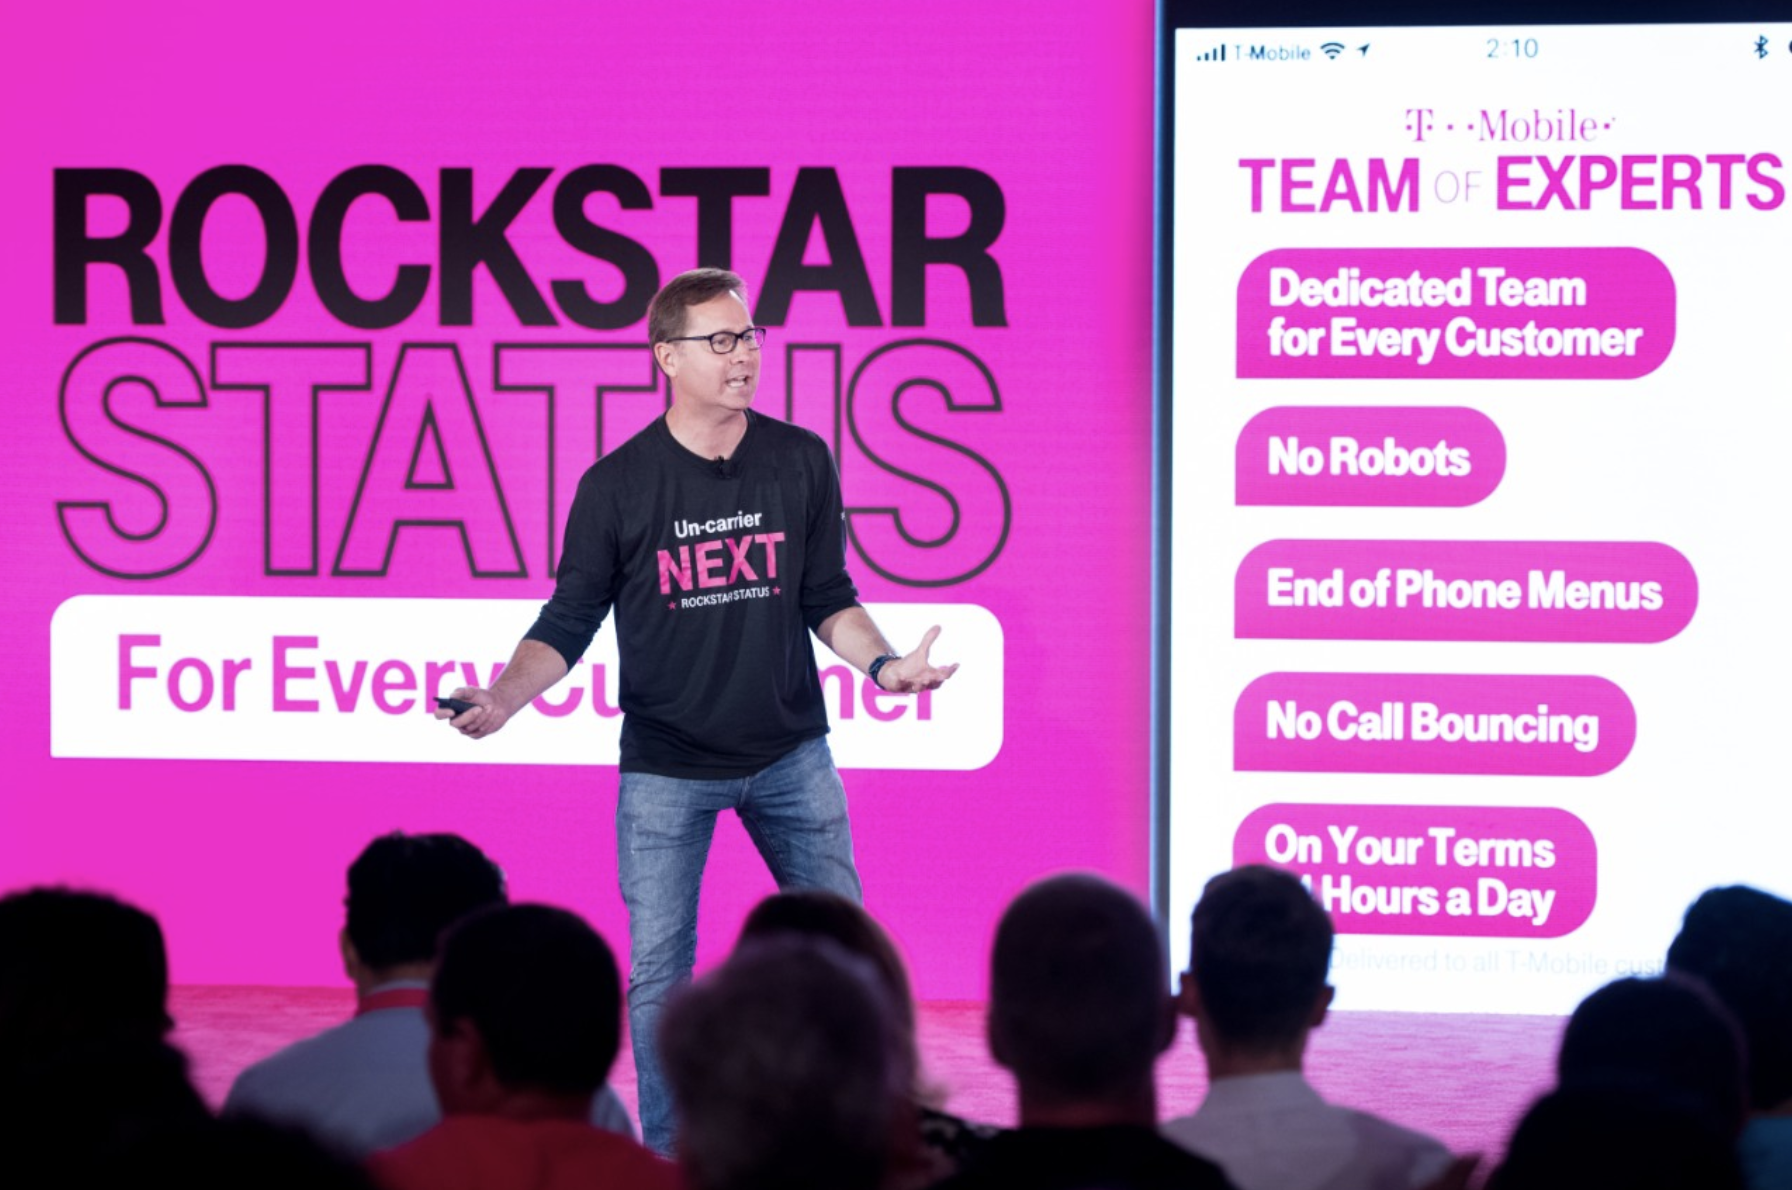 With T-Mobile Team of Experts, when you call or message T-Mobile, you get a tight-knit team dedicated to you and others in your city. No more bots or automated phone menus! Full story at www.hipmamasplace.com #AD #TMobileTEX